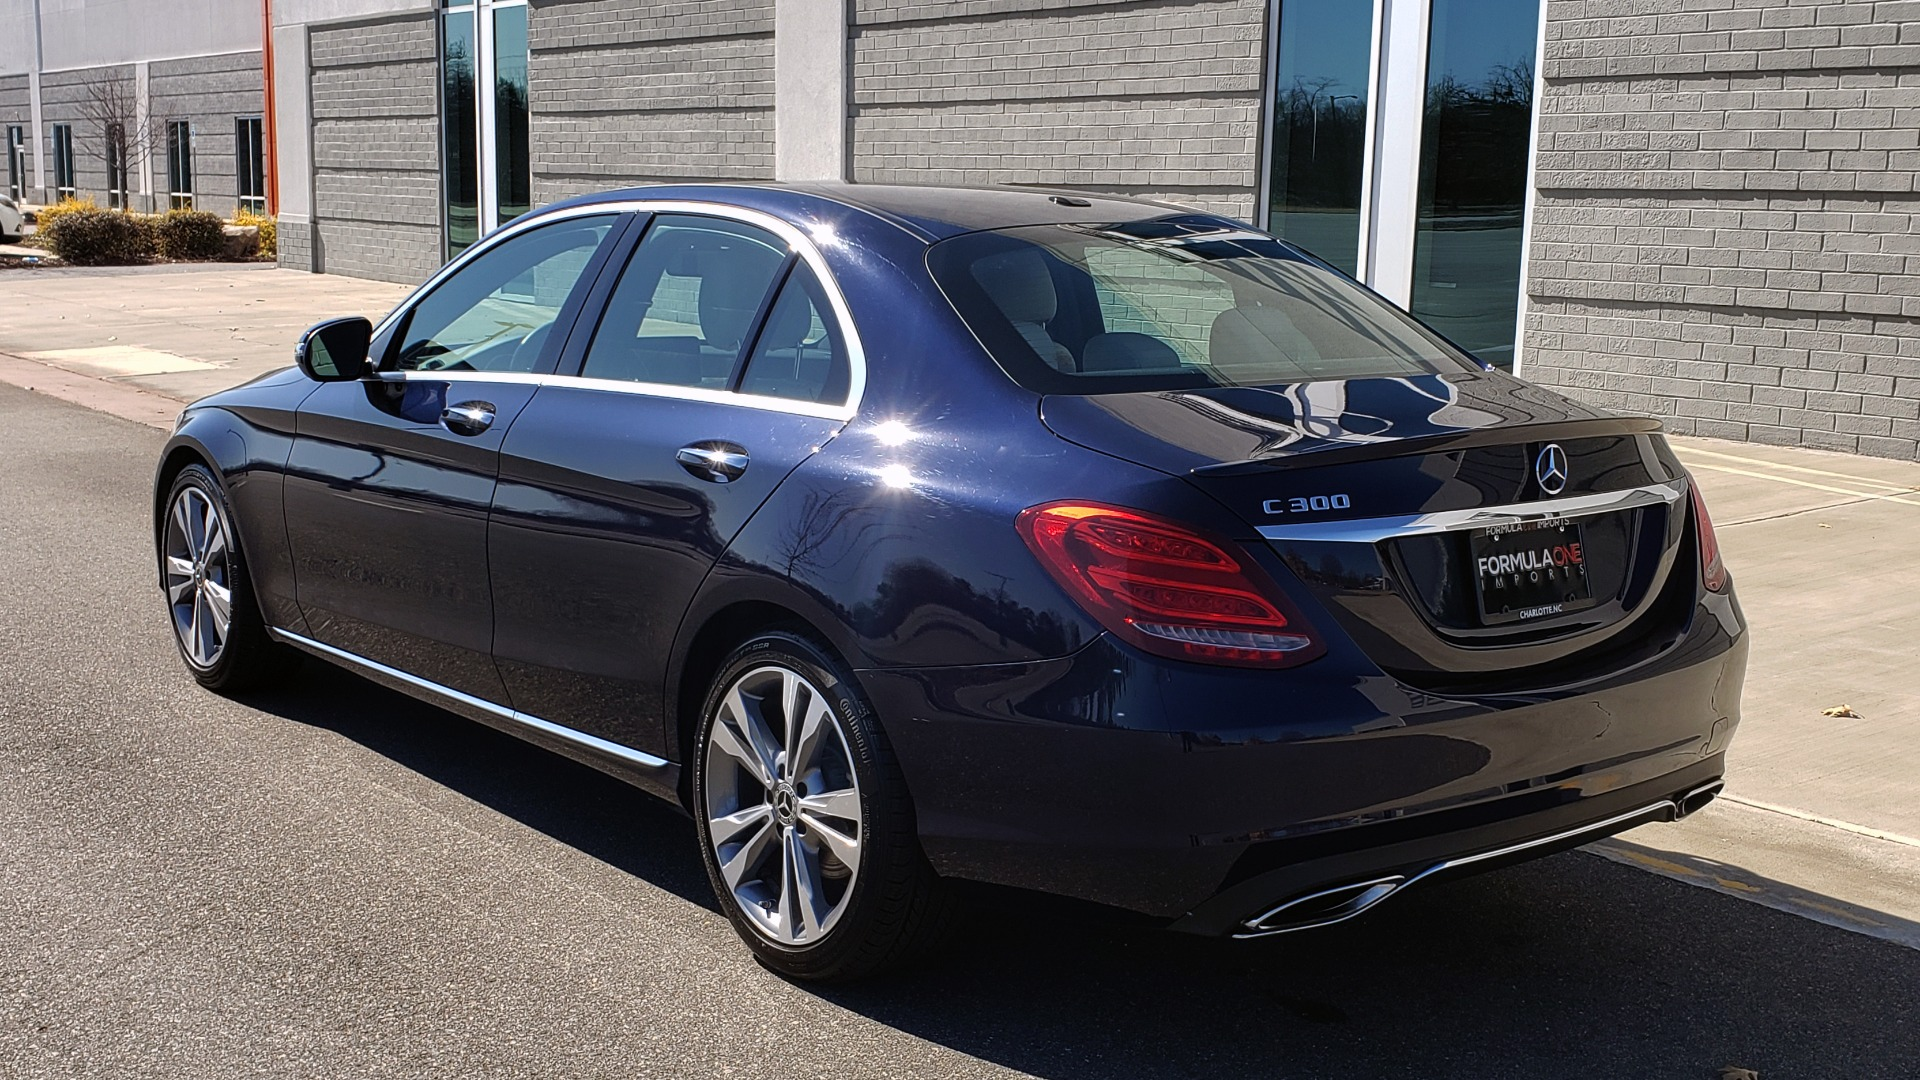 Used 2018 Mercedes-Benz C-CLASS C 300 PREMIUM / SUNROOF / BURMESTER / BSM / REARVIEW for sale $23,995 at Formula Imports in Charlotte NC 28227 4